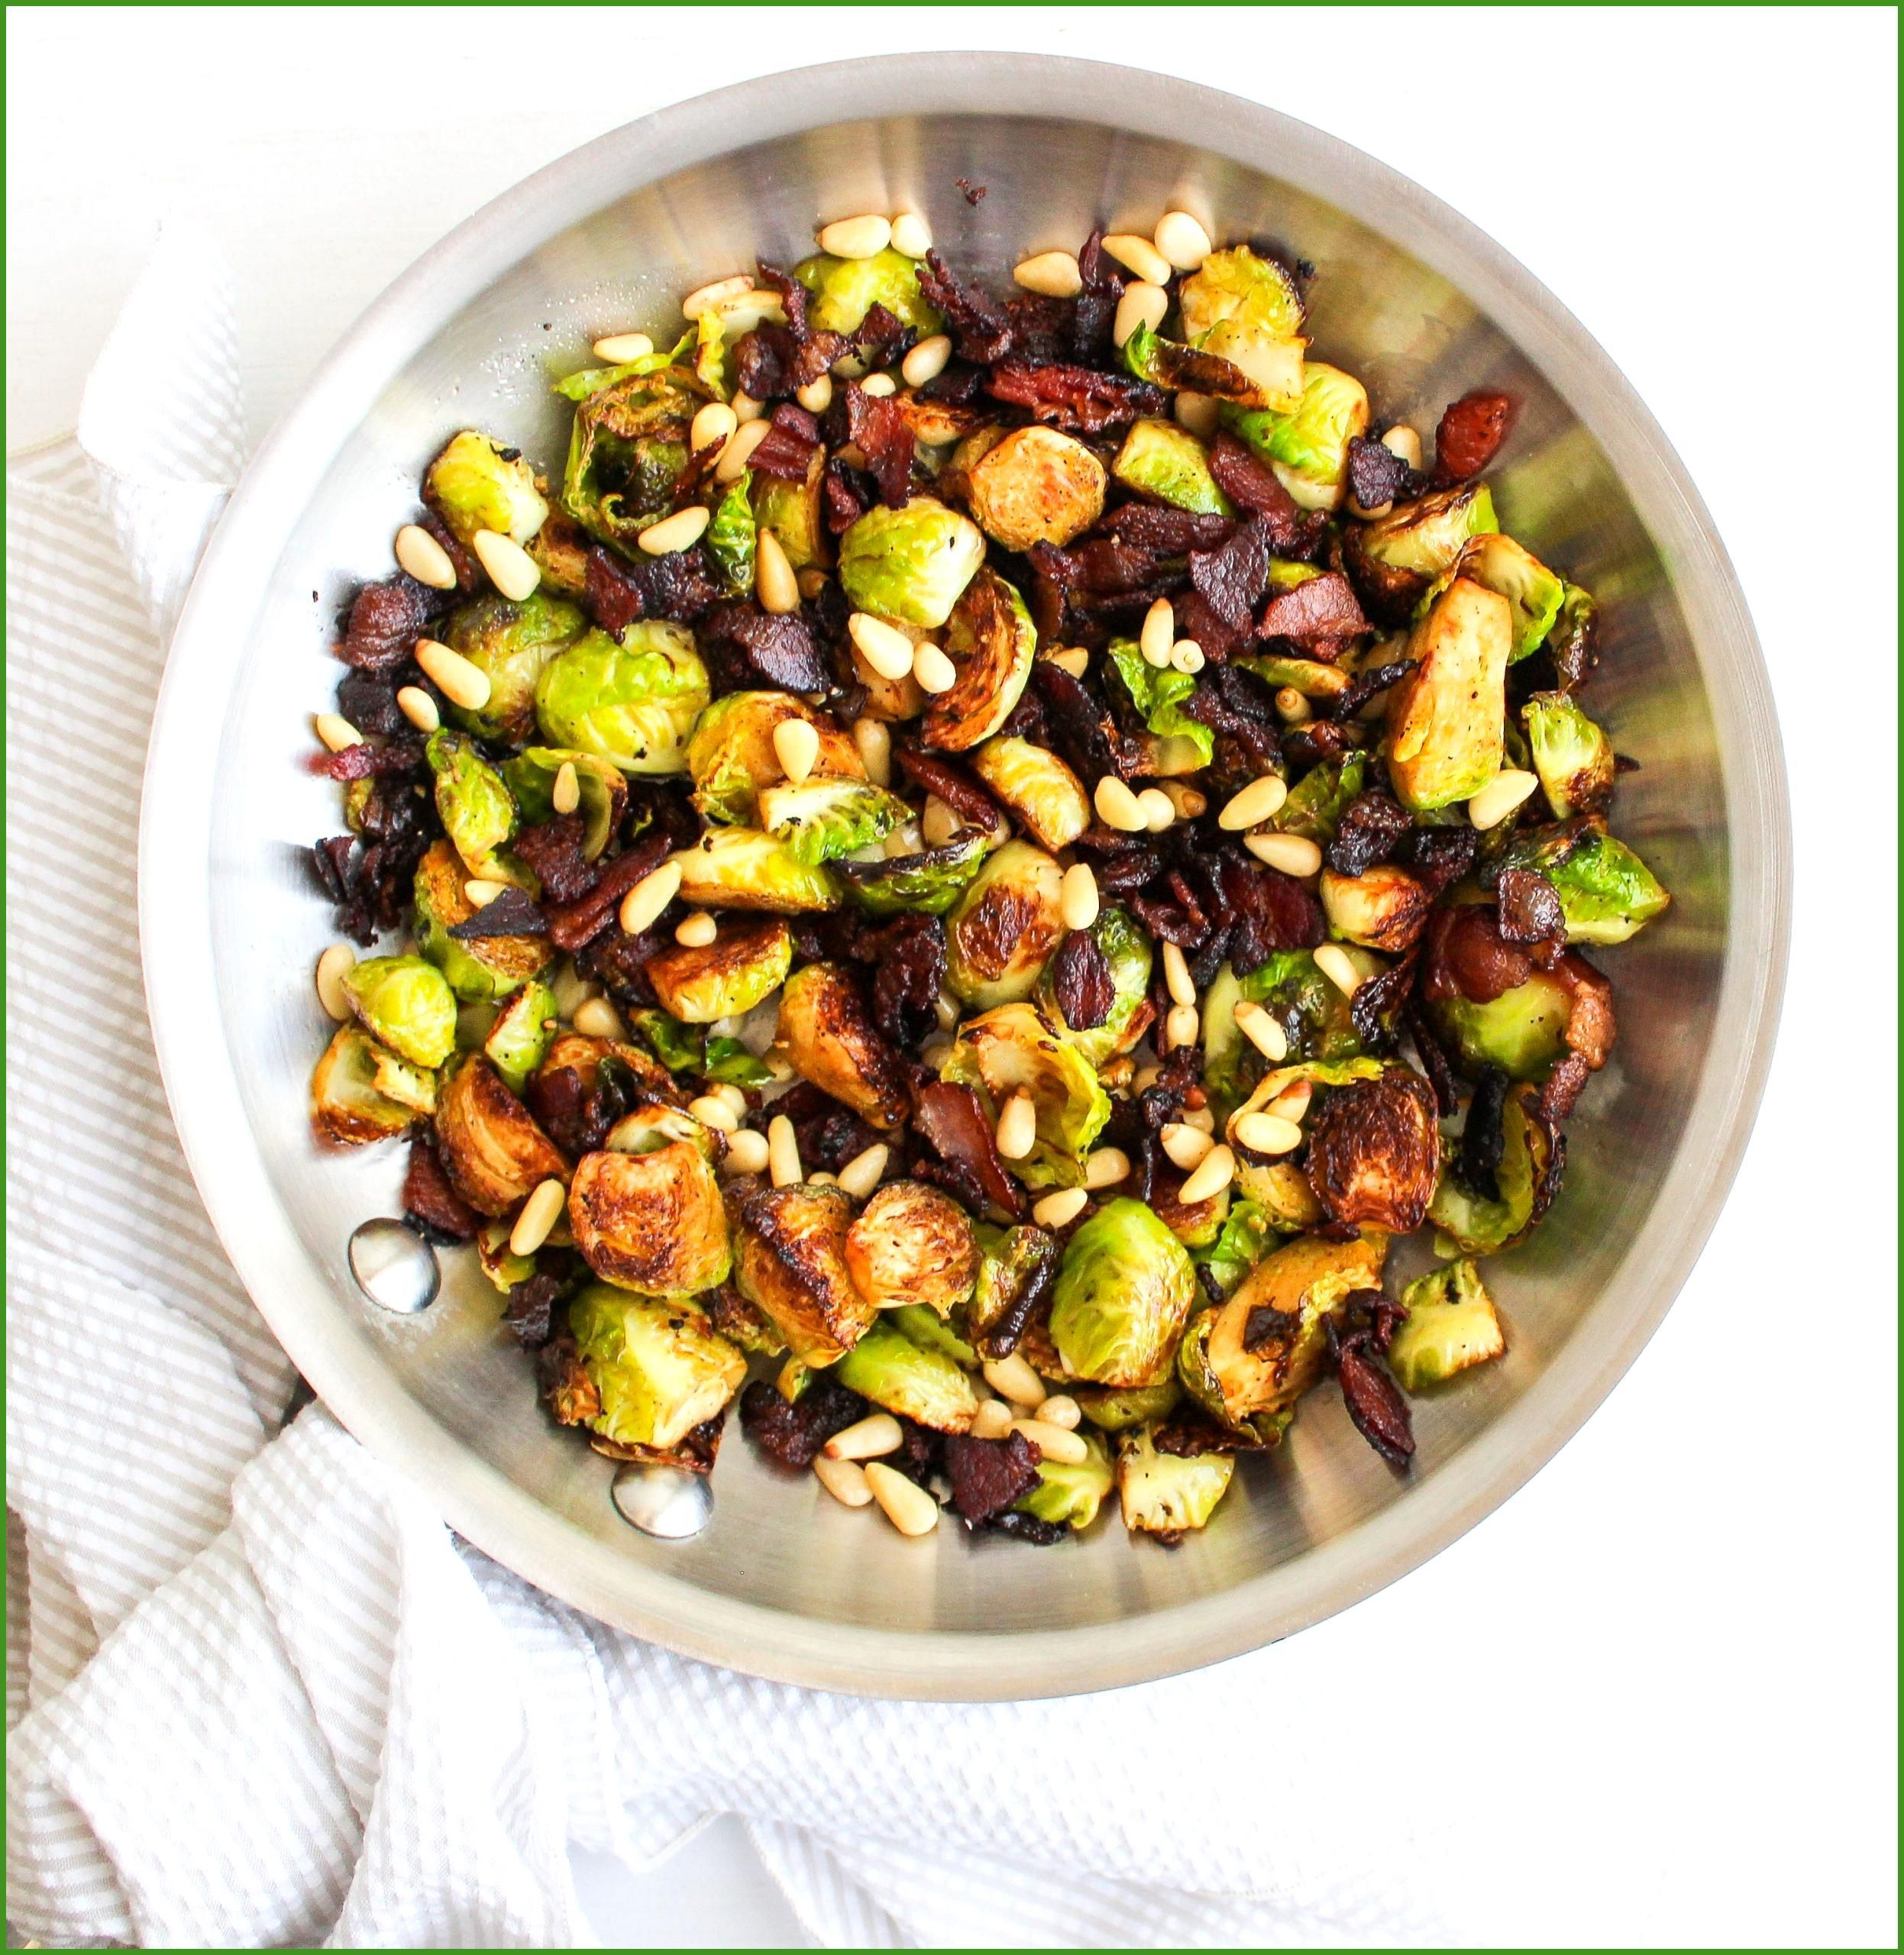 Brussels sprouts with balsamic bacon and pine nuts #buffalobrusselsprouts Brusse ... #buffalobrusselsprouts Brussels sprouts with balsamic bacon and pine nuts #buffalobrusselsprouts Brusse ..., #Bacon #Balsamic #Brusse #BrusselSproutsairfryer #BrusselSproutswhole30 #Brussels #buffalobrusselsprouts #nuts #Pine #Sprouts #buffalobrusselsprouts